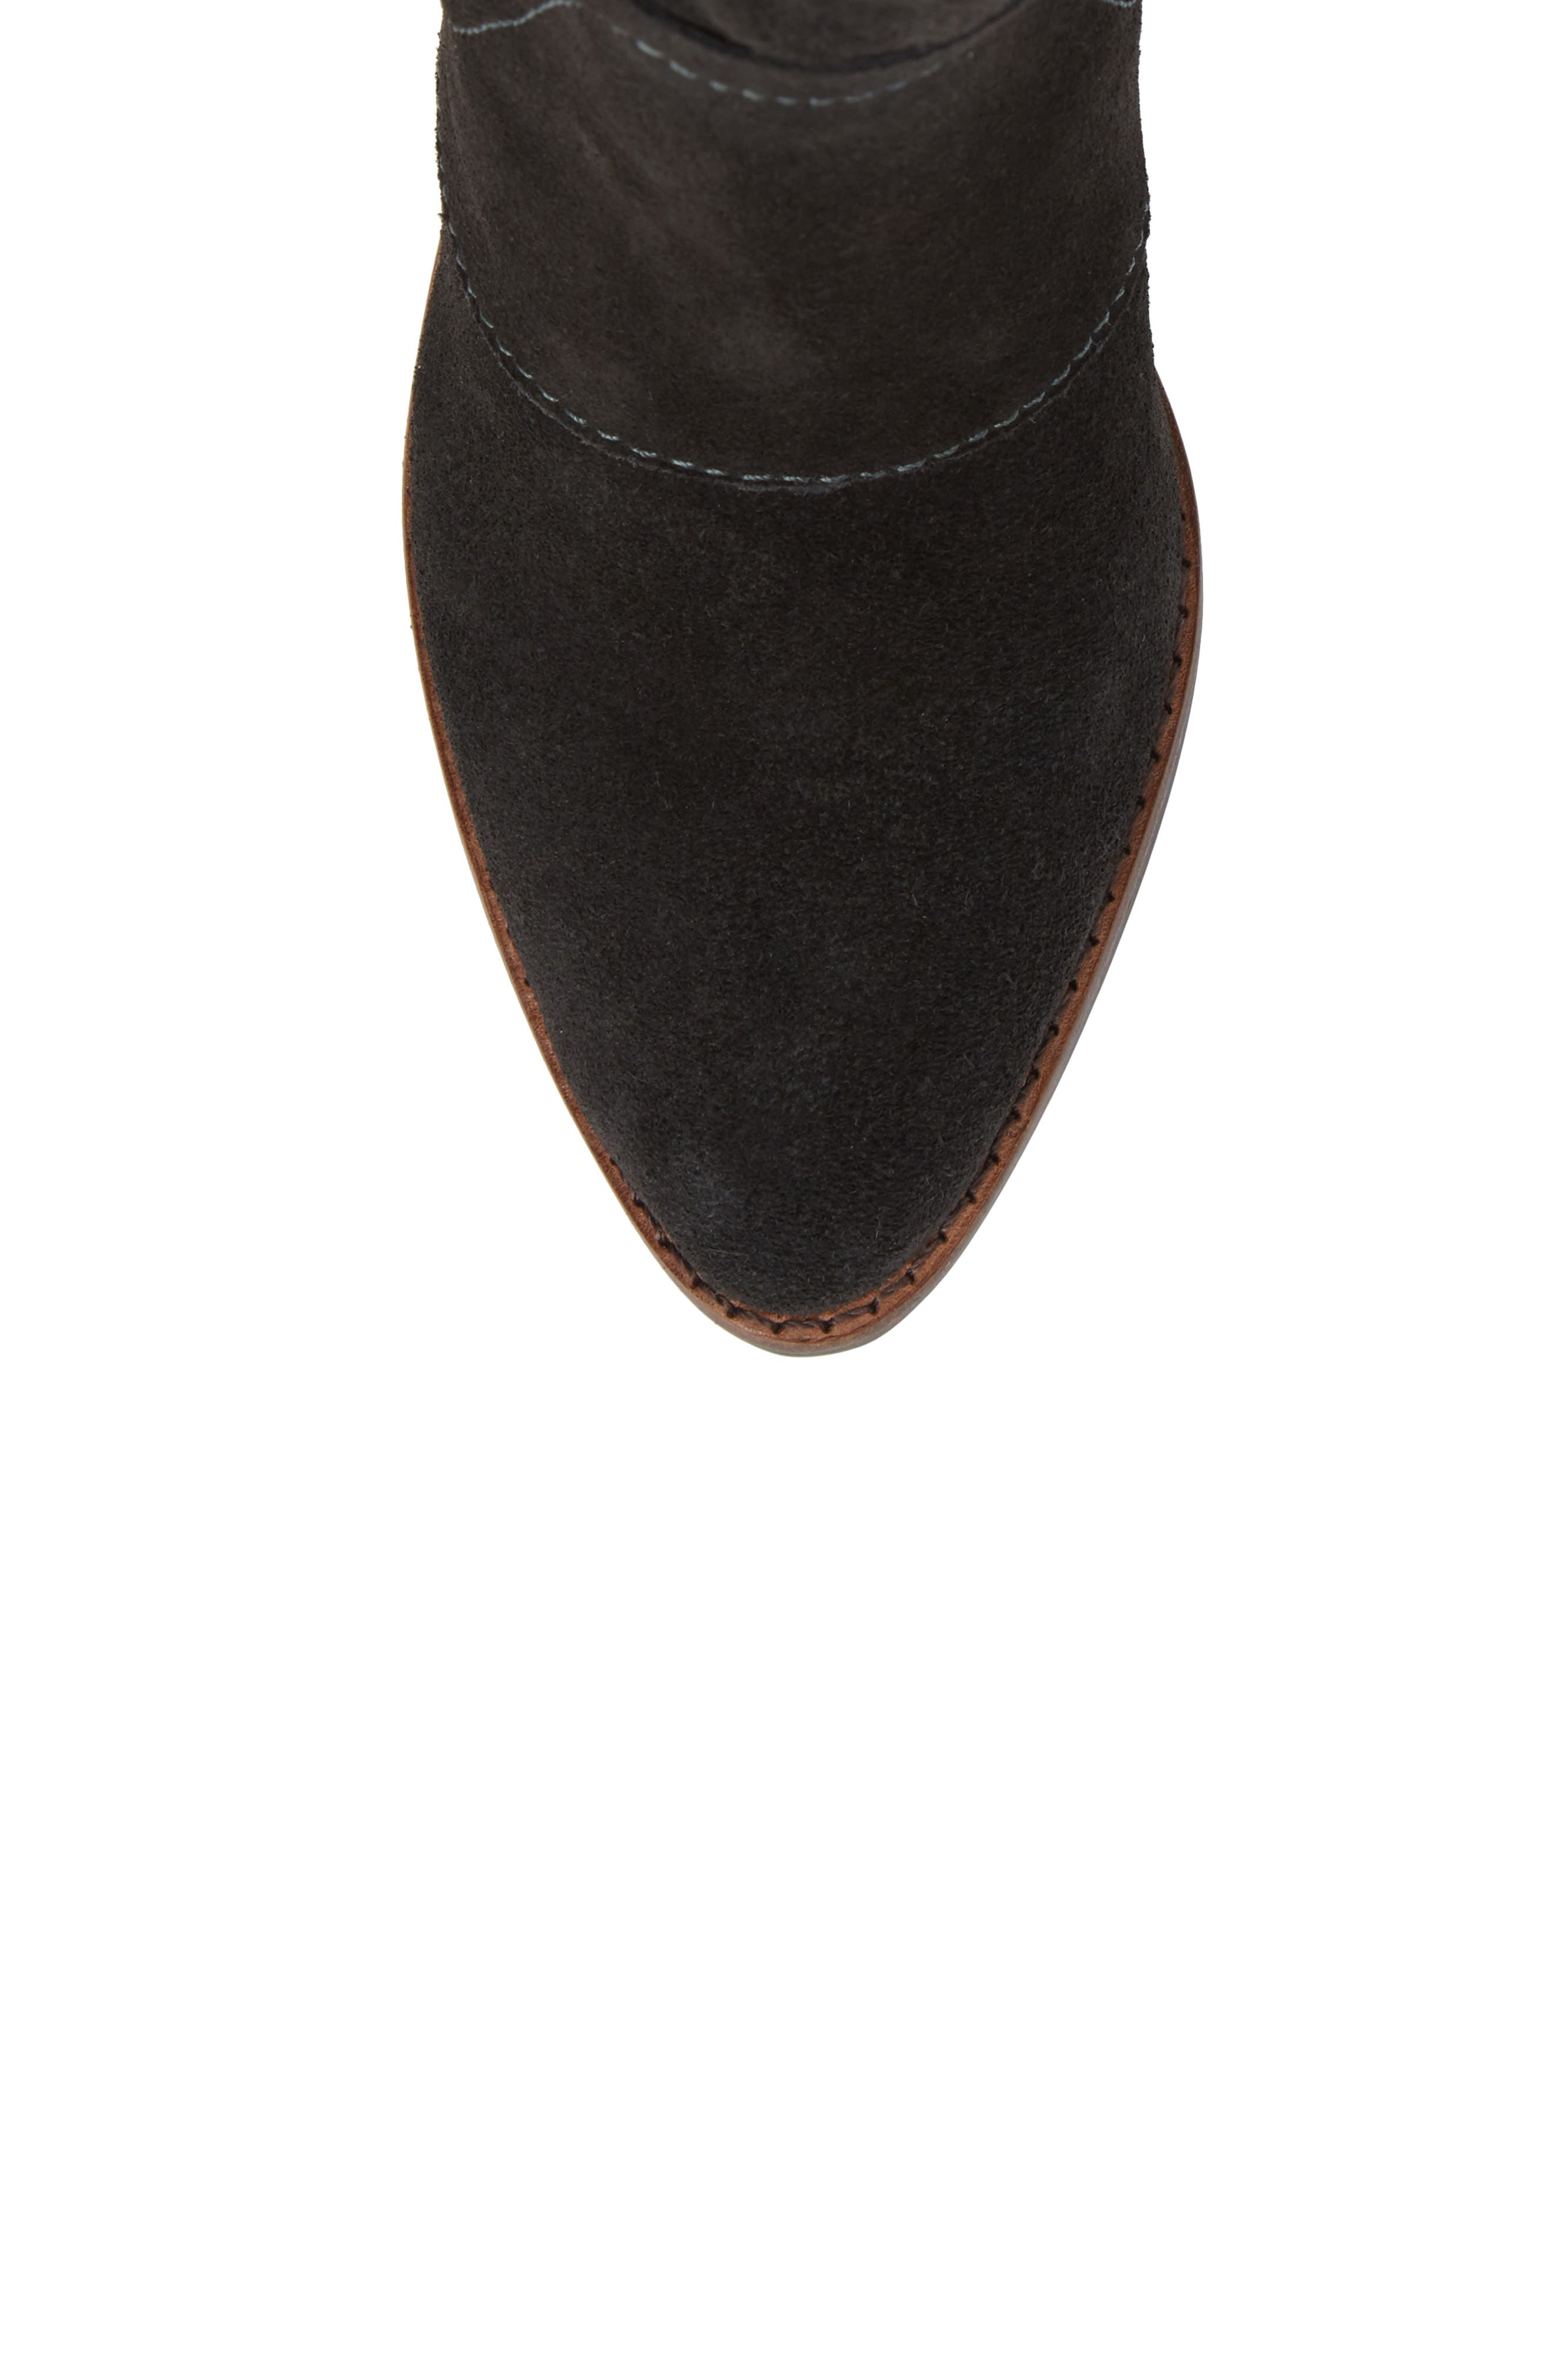 Laney Notched Heel Bootie,                             Alternate thumbnail 5, color,                             Forest Suede